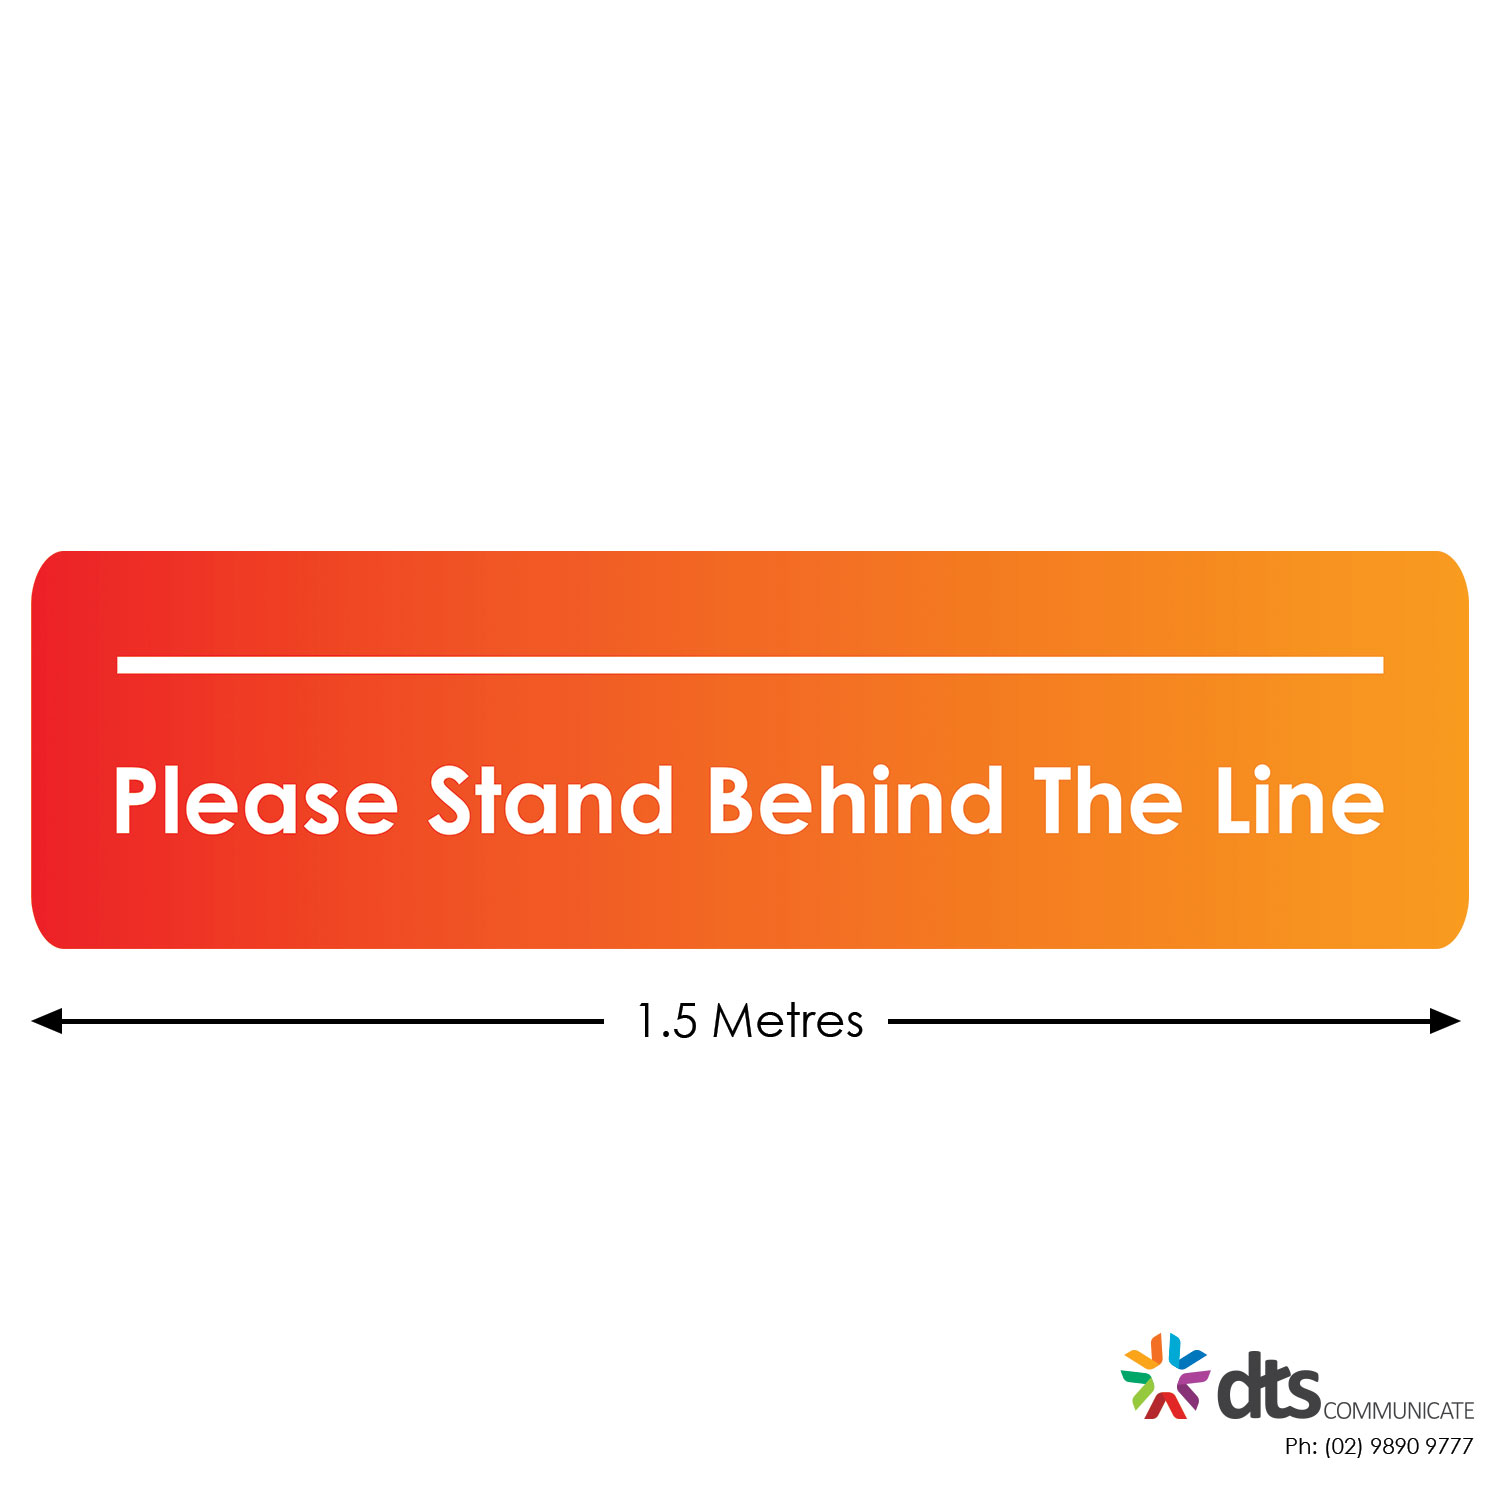 XLART DTS Covid19 Covid Floor Stickers Decals Social Distancing Sydney Melbourne Australia Stand Behind The Line style 38